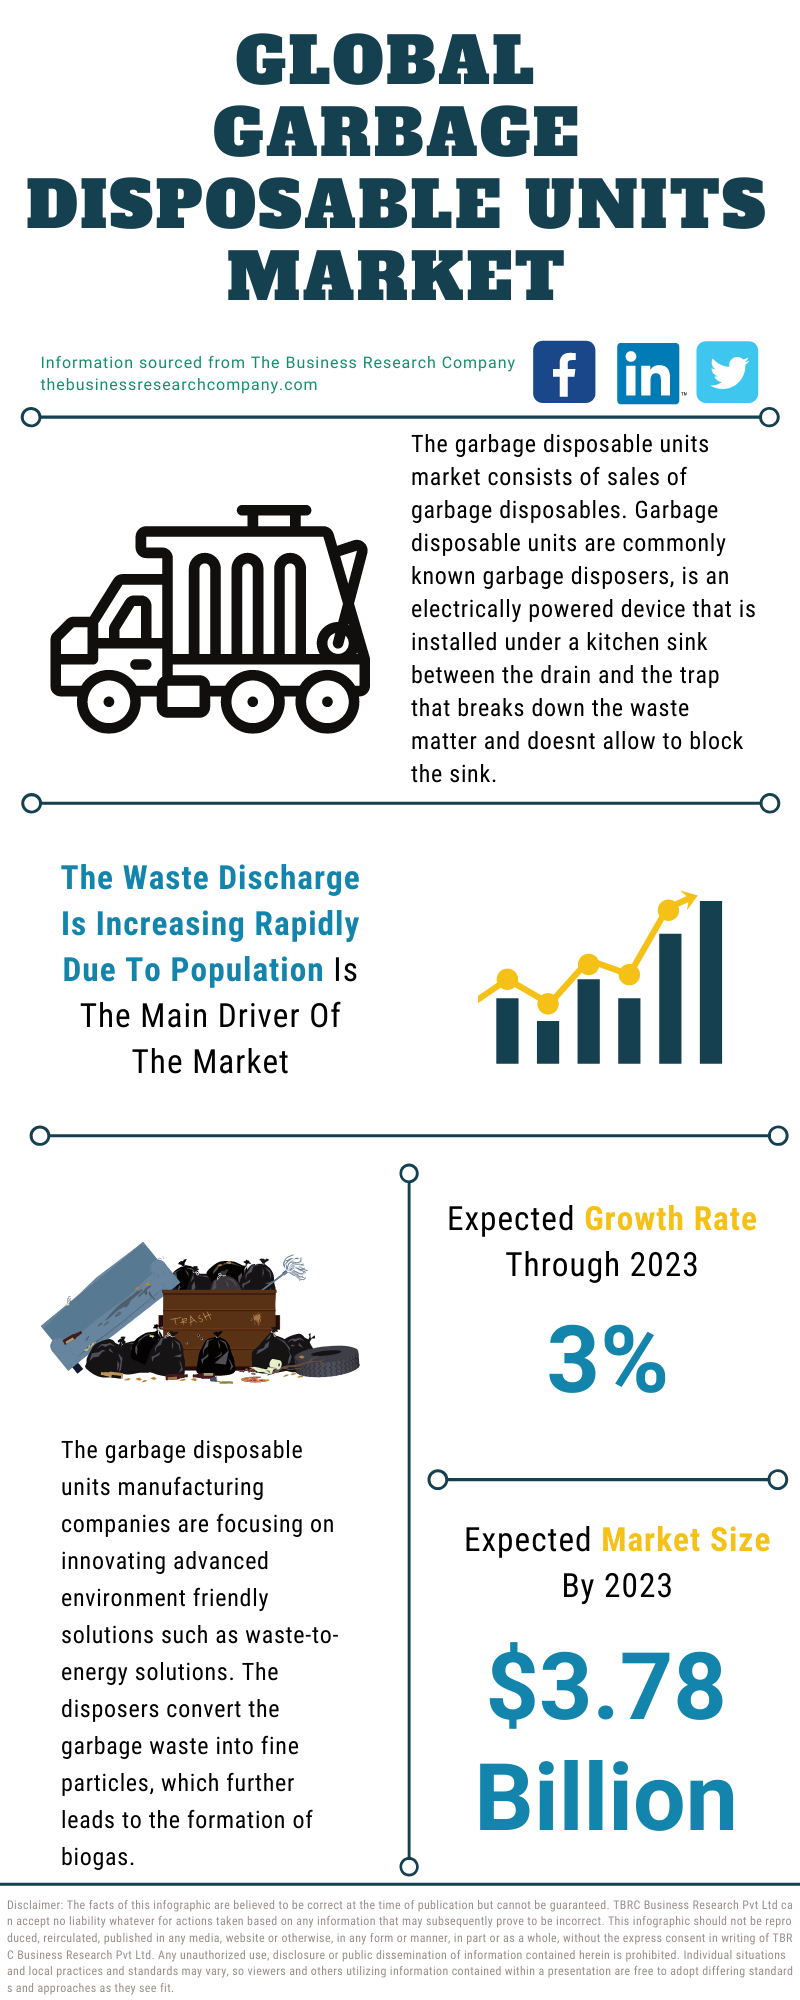 Garbage Disposable Units Market